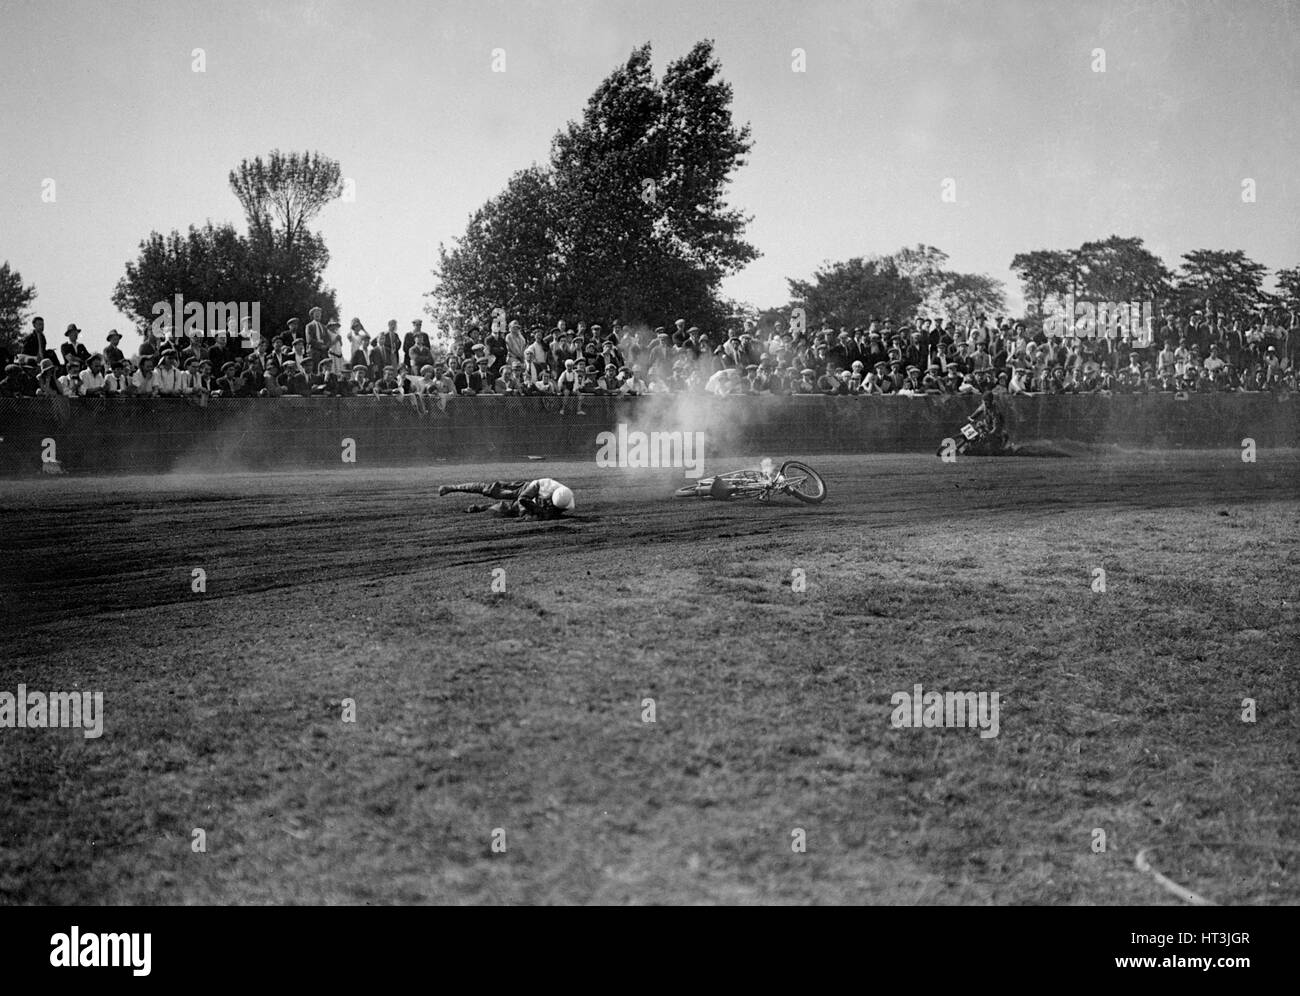 Fallen rider in a speedway race at Lea Bridge Stadium, Leyton, London, 1928.   Artist: Bill Brunell. - Stock Image